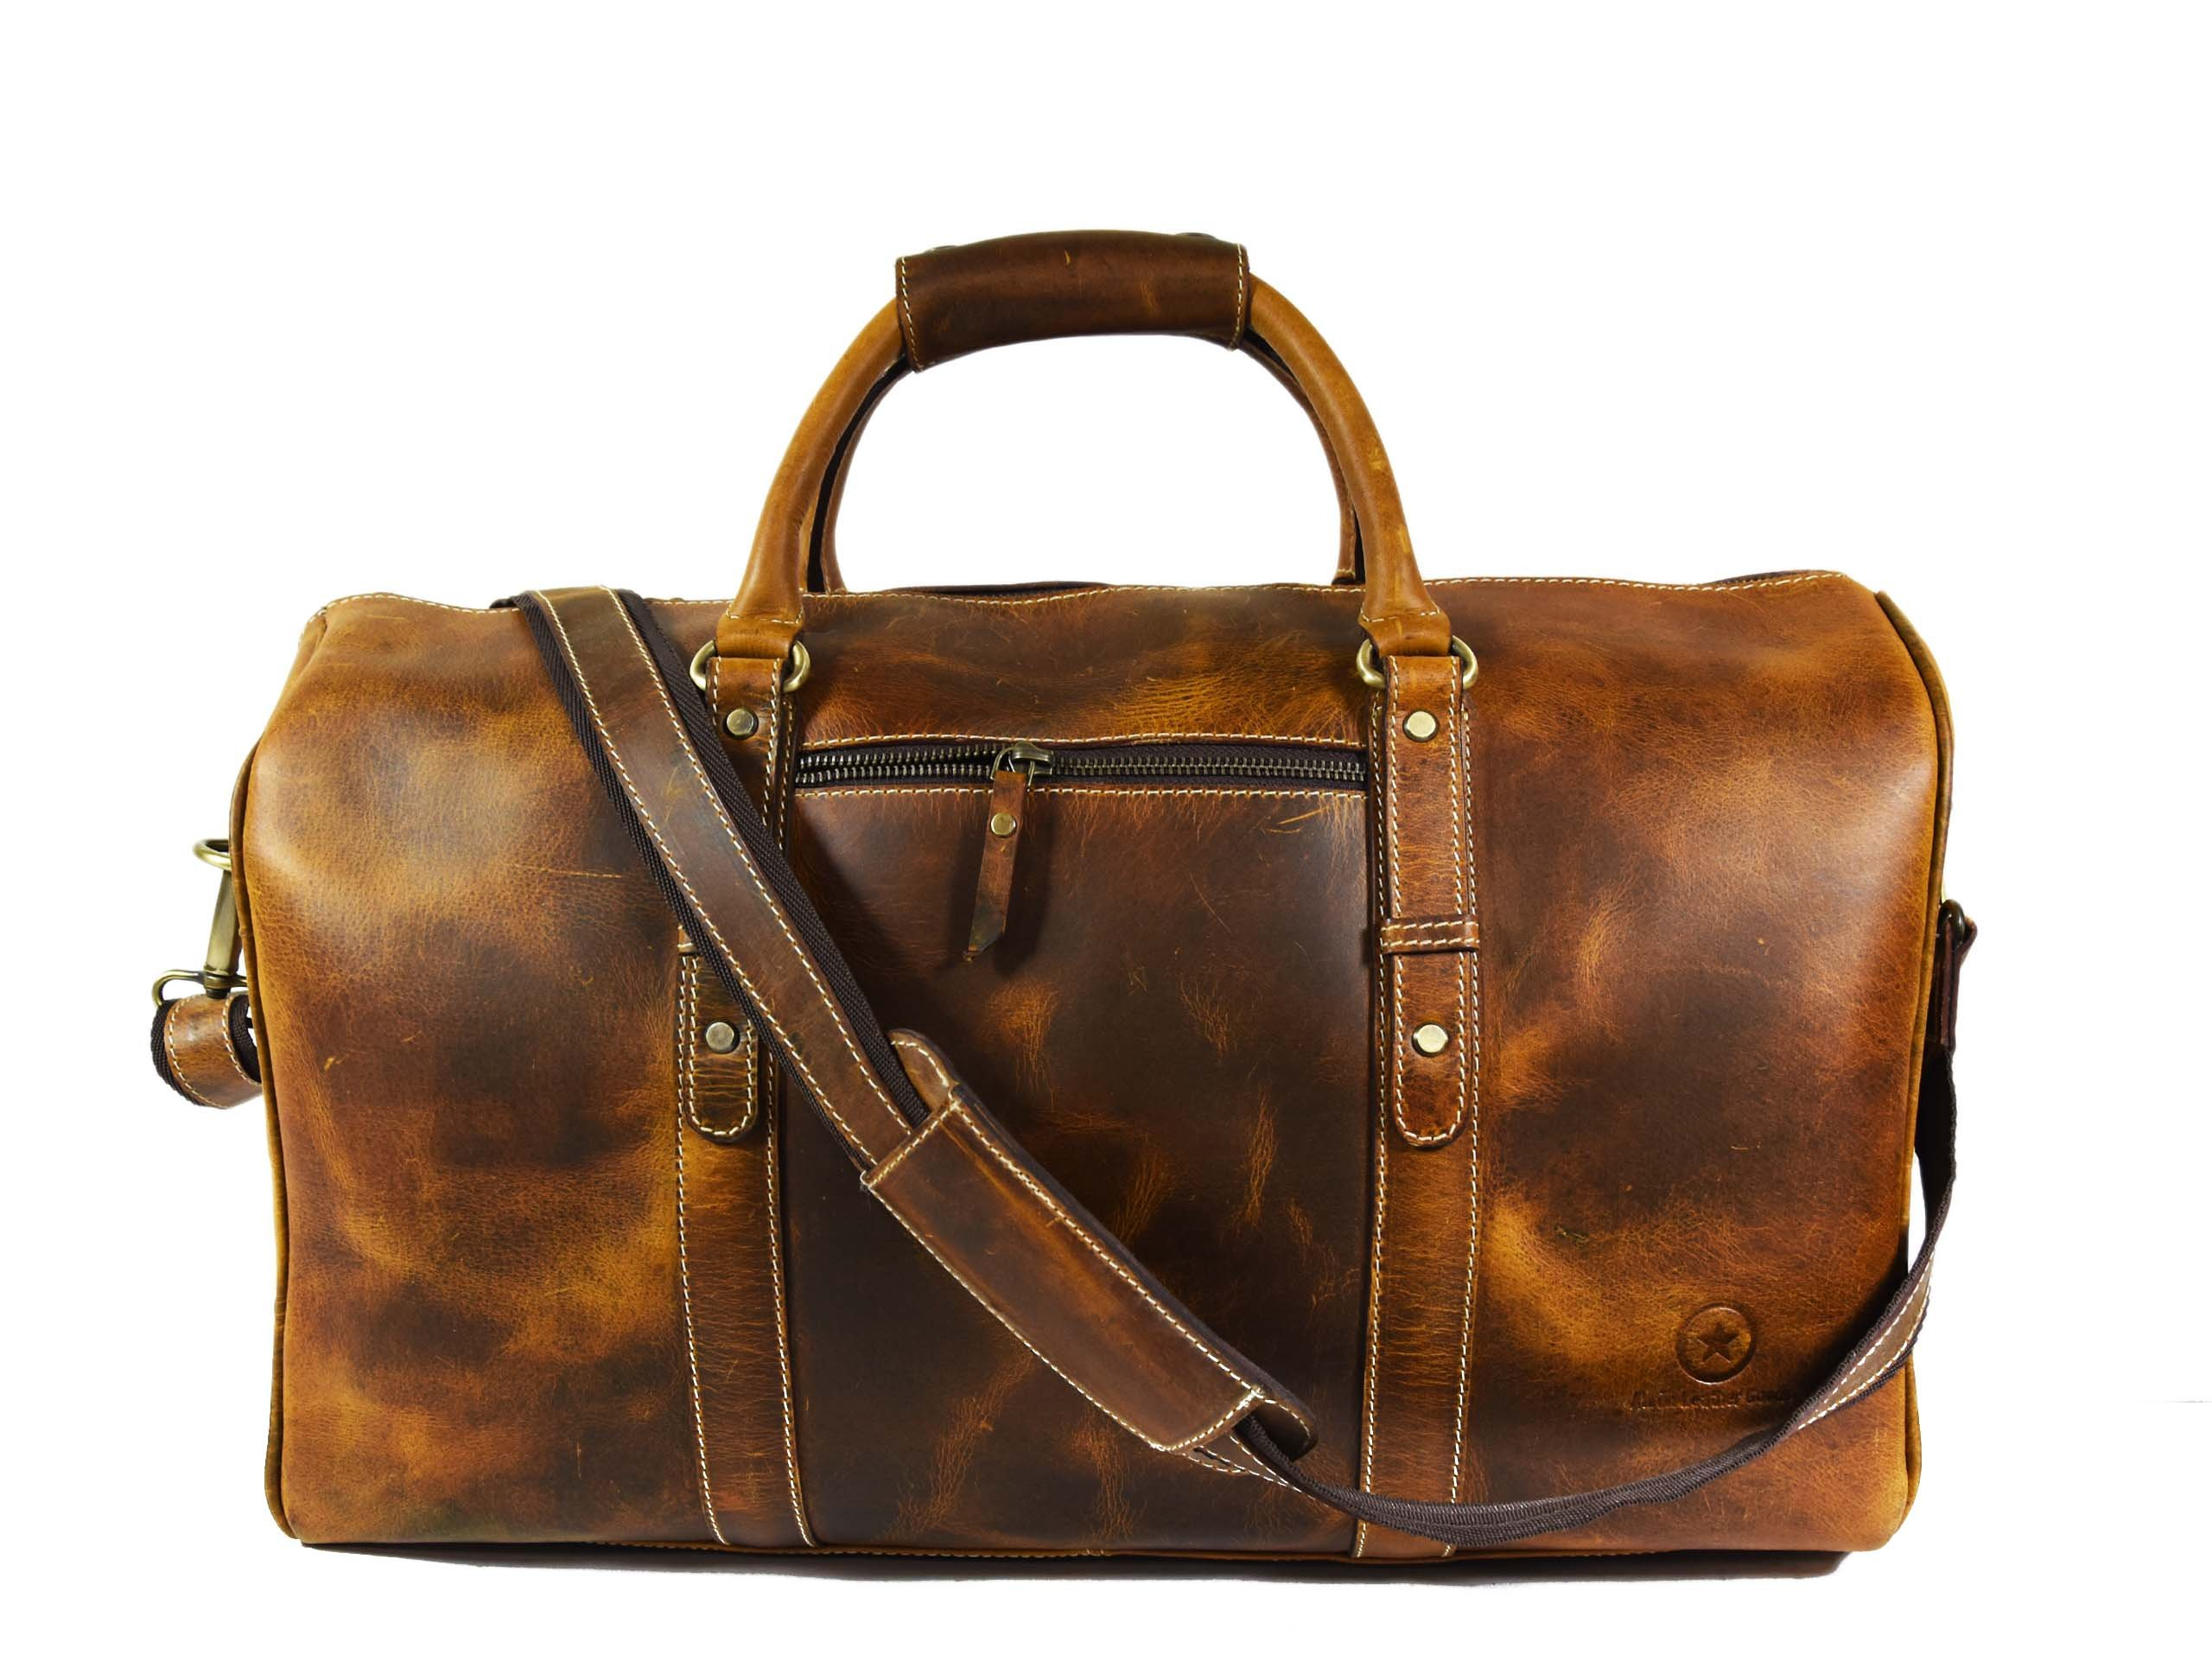 20 Inch Leather Travel Duffle Bag ,Gym Overnight Weekend Bag,By Aaron Leather (Brown)